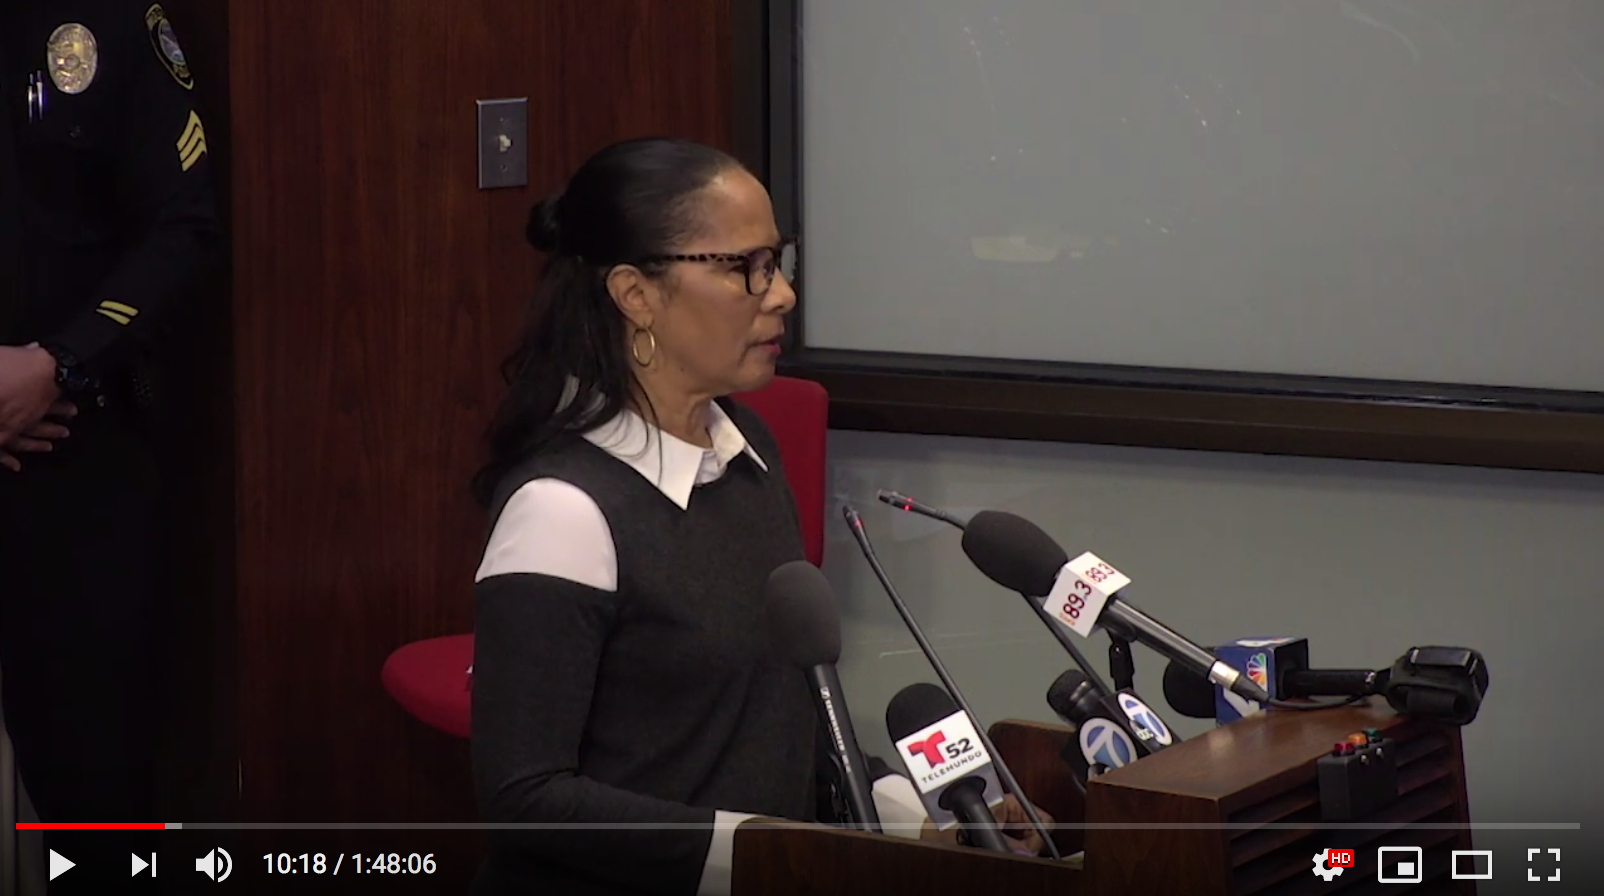 At the March 5th, 2019 council meeting, P4H member Hazara Price speaks in support of the rent cap and just-cause evictions. Click the photo to hear her address the council (view at about 8:50 mark of the video).